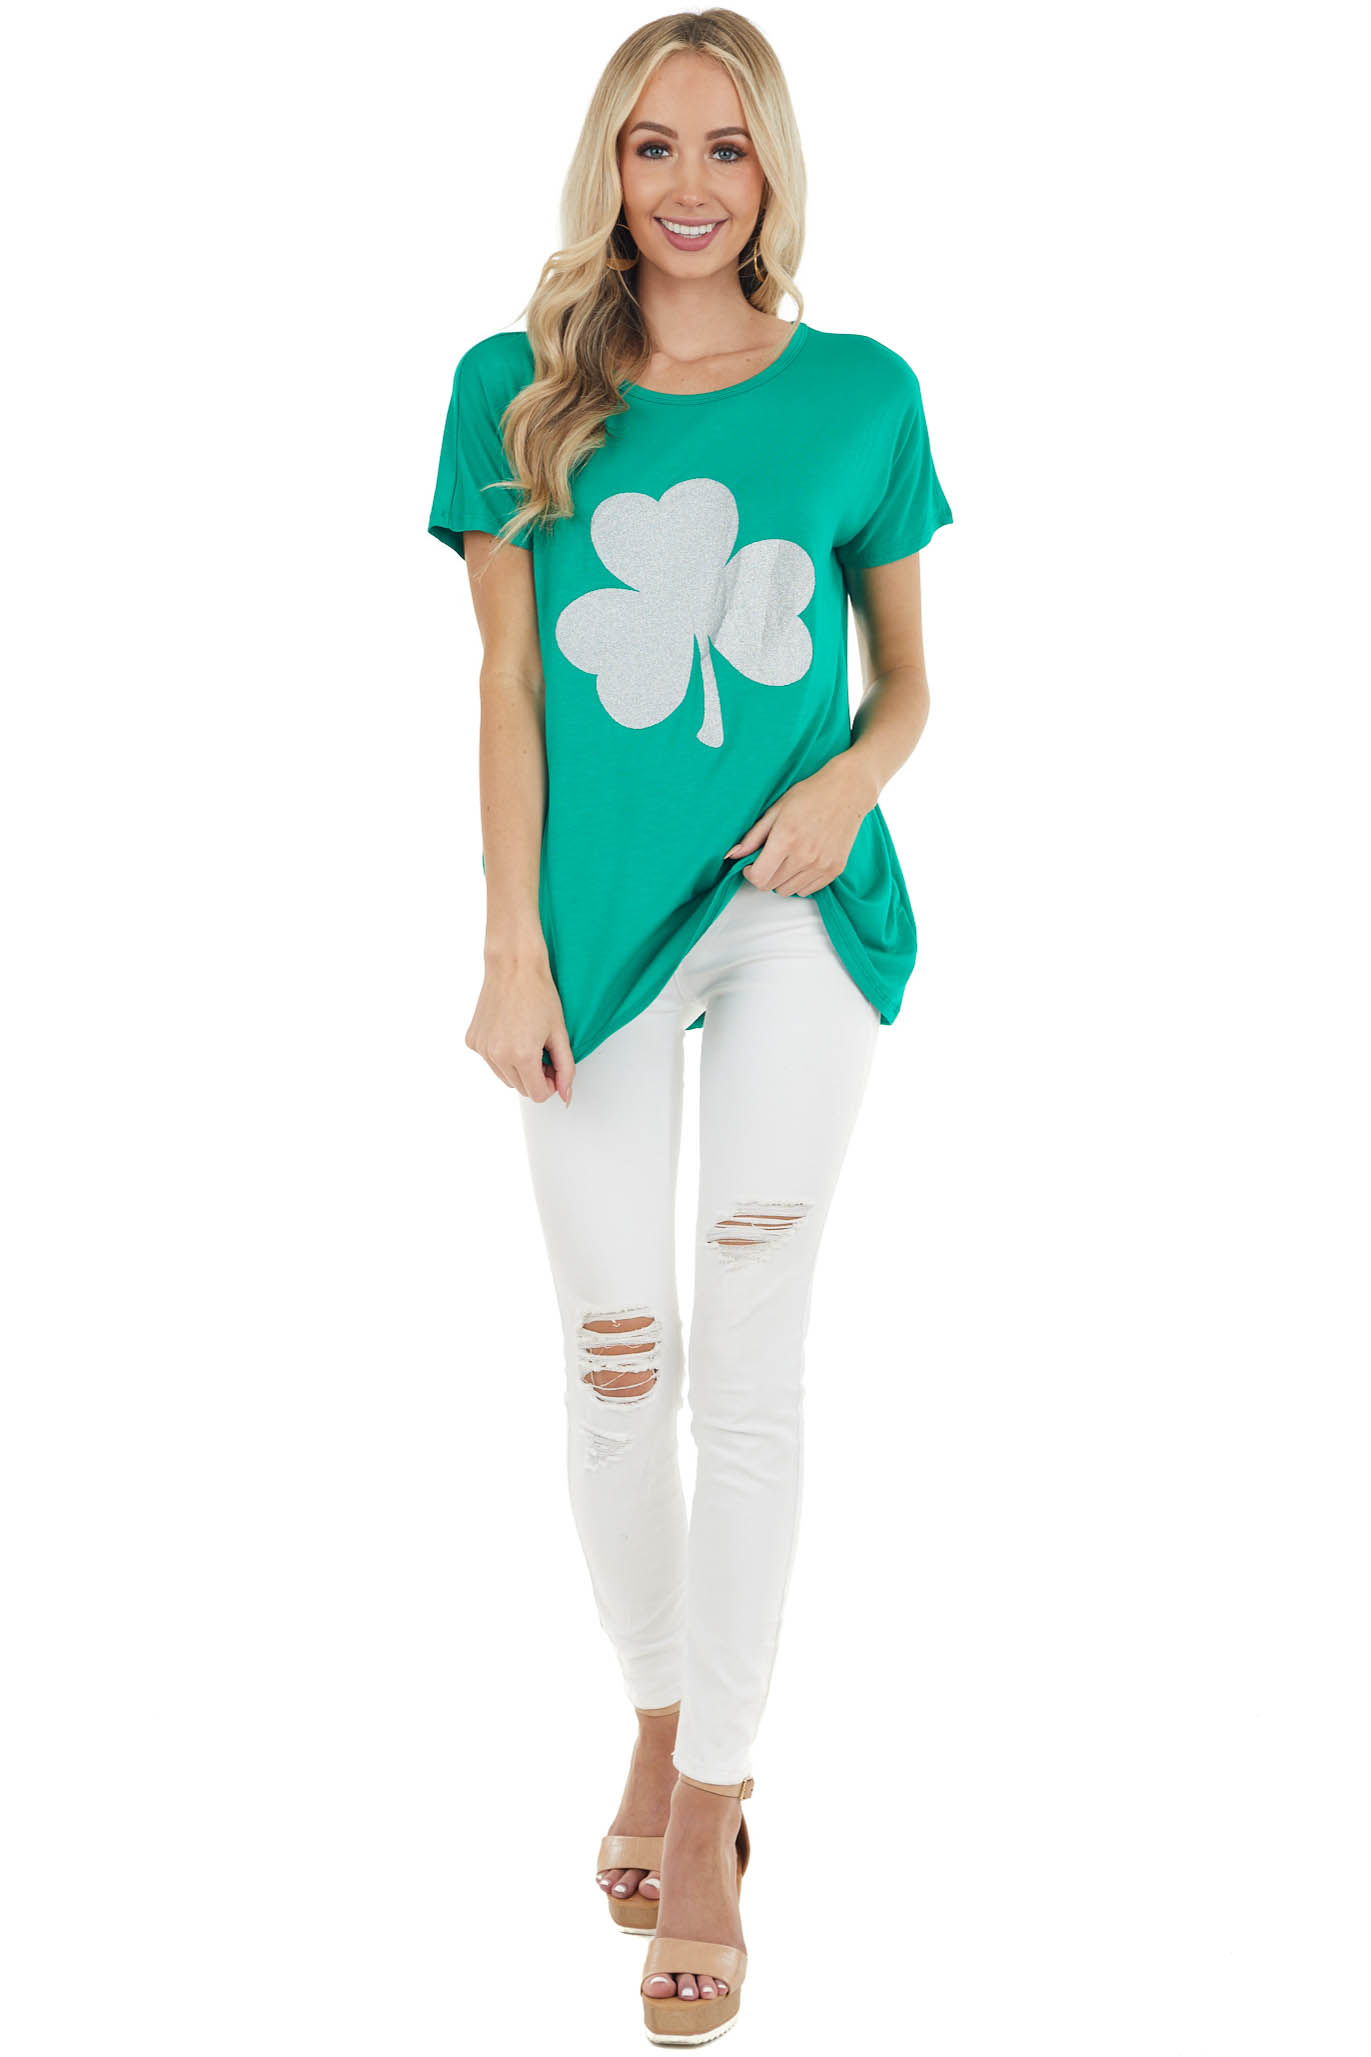 Jade Short Sleeve Knit Top with Glittery Clover Graphic